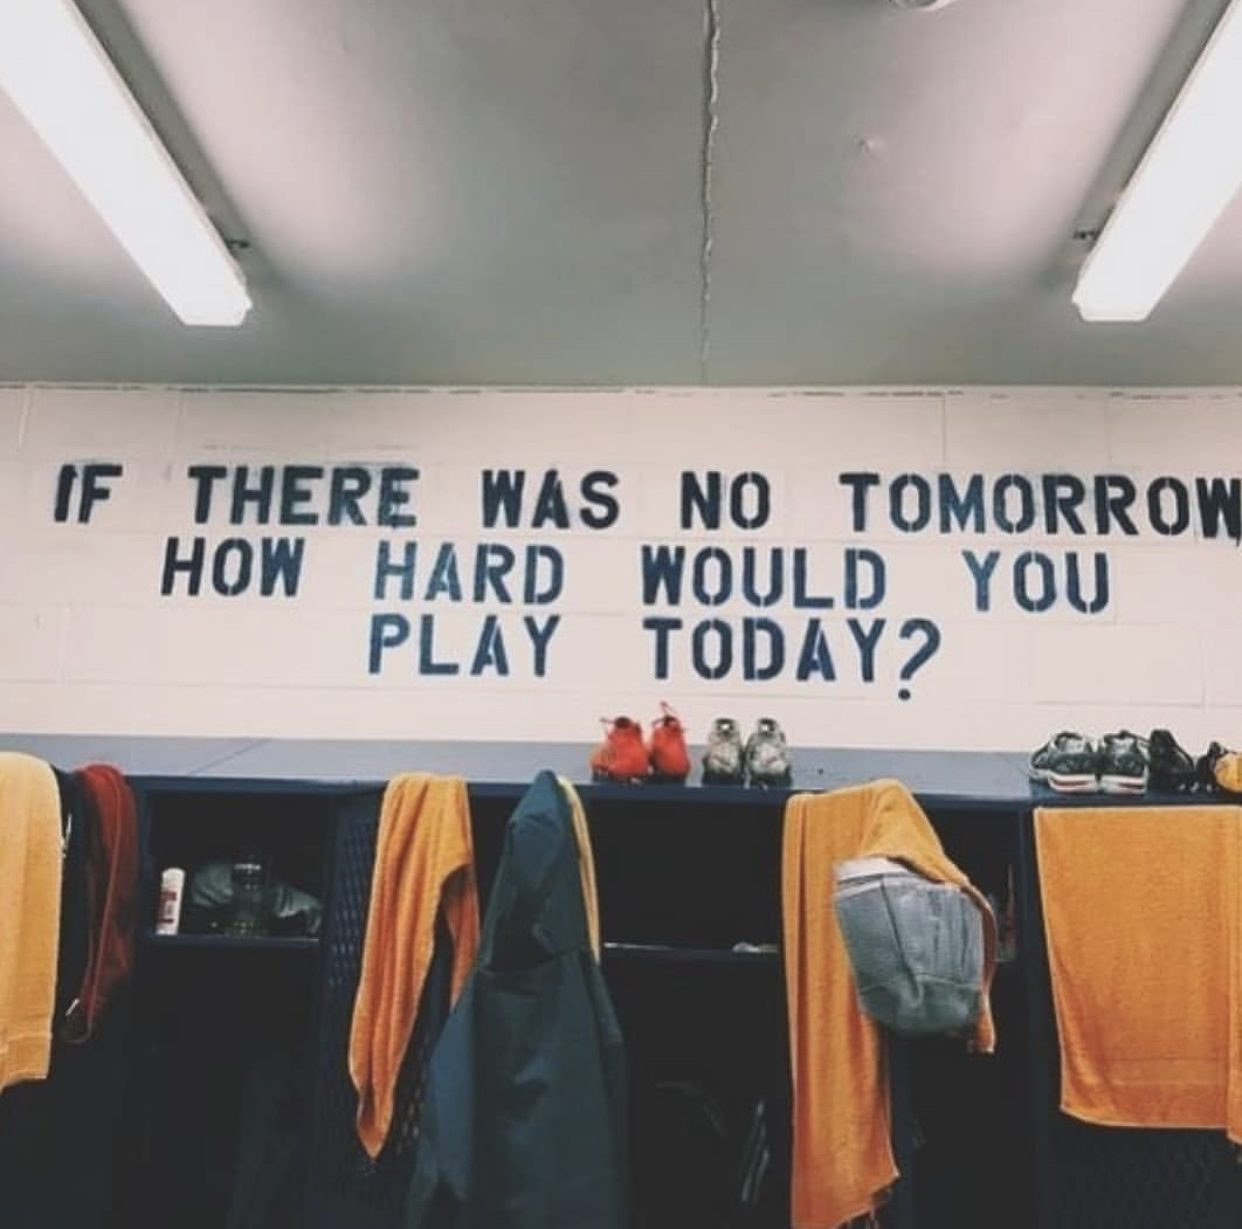 [image] if there was no tomorrow, how hard would you play today?